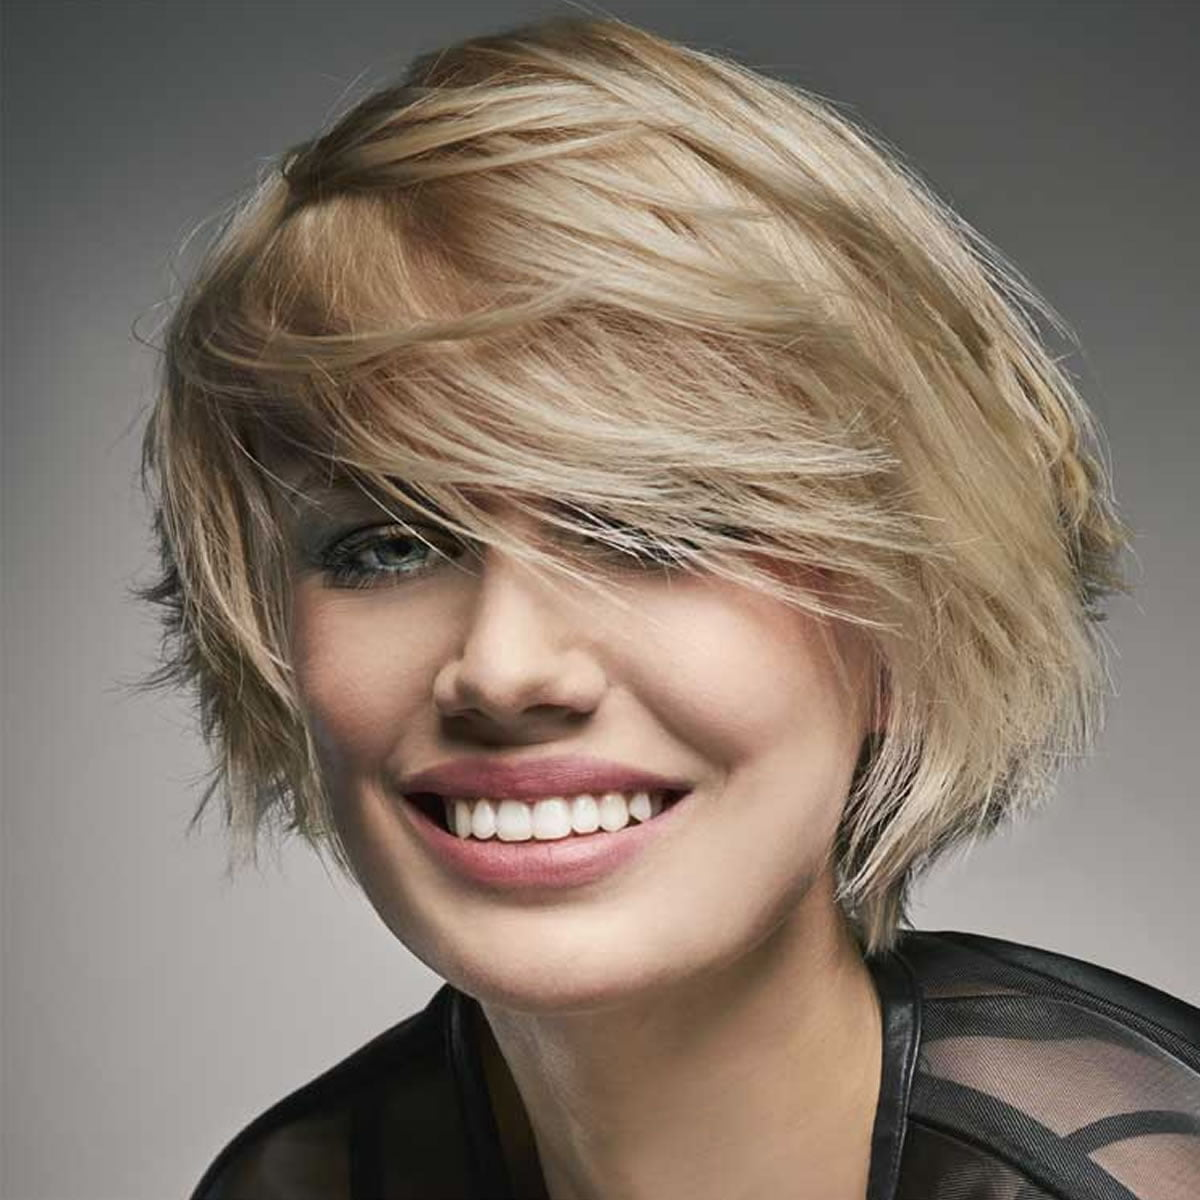 The Best 30 Short Bob Haircuts - 2018 Short Hairstyles for ...